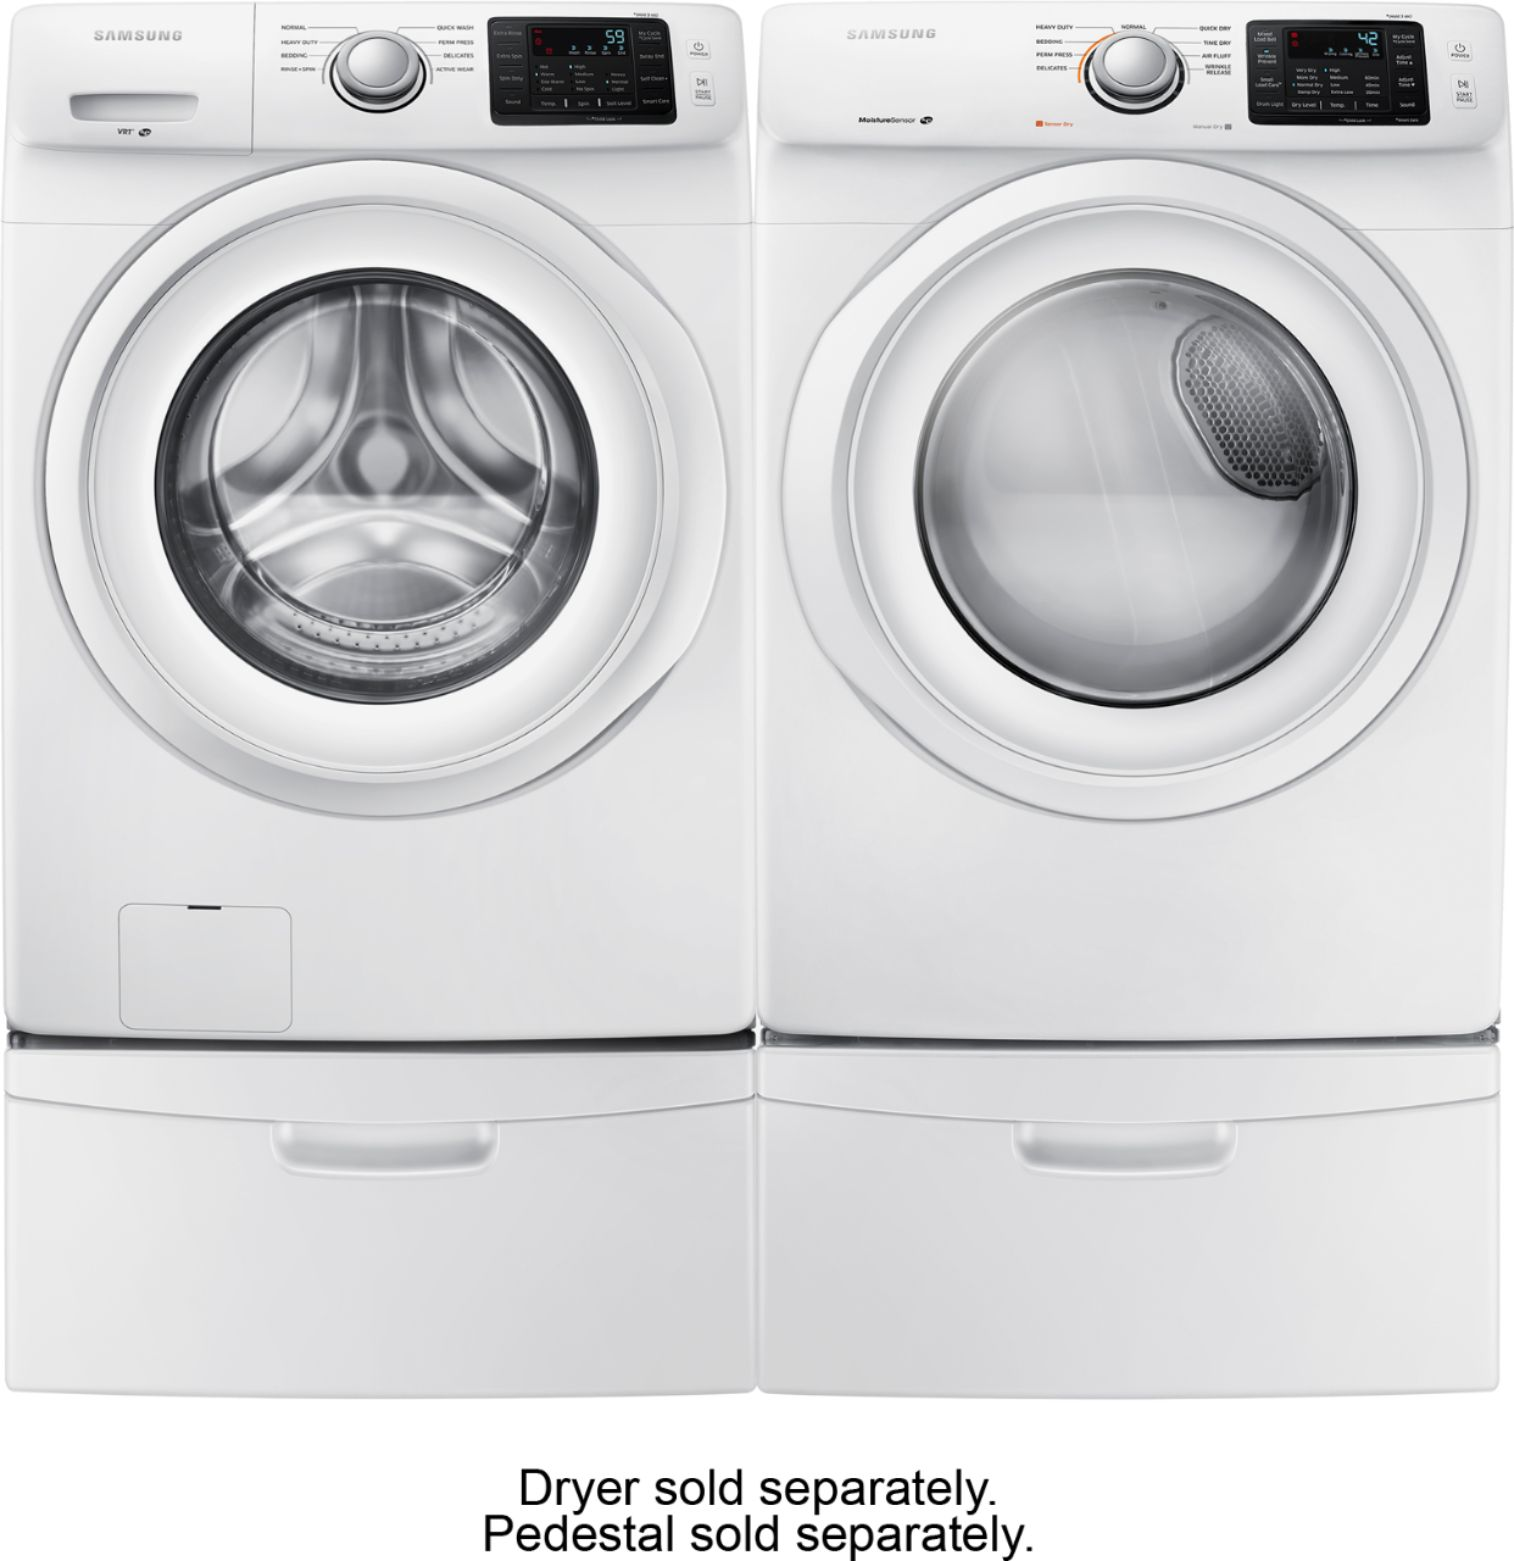 Samsung Front Load Washer Samsung 4 2 Cu Ft 8 Cycle High Efficiency Front Loading Washer White